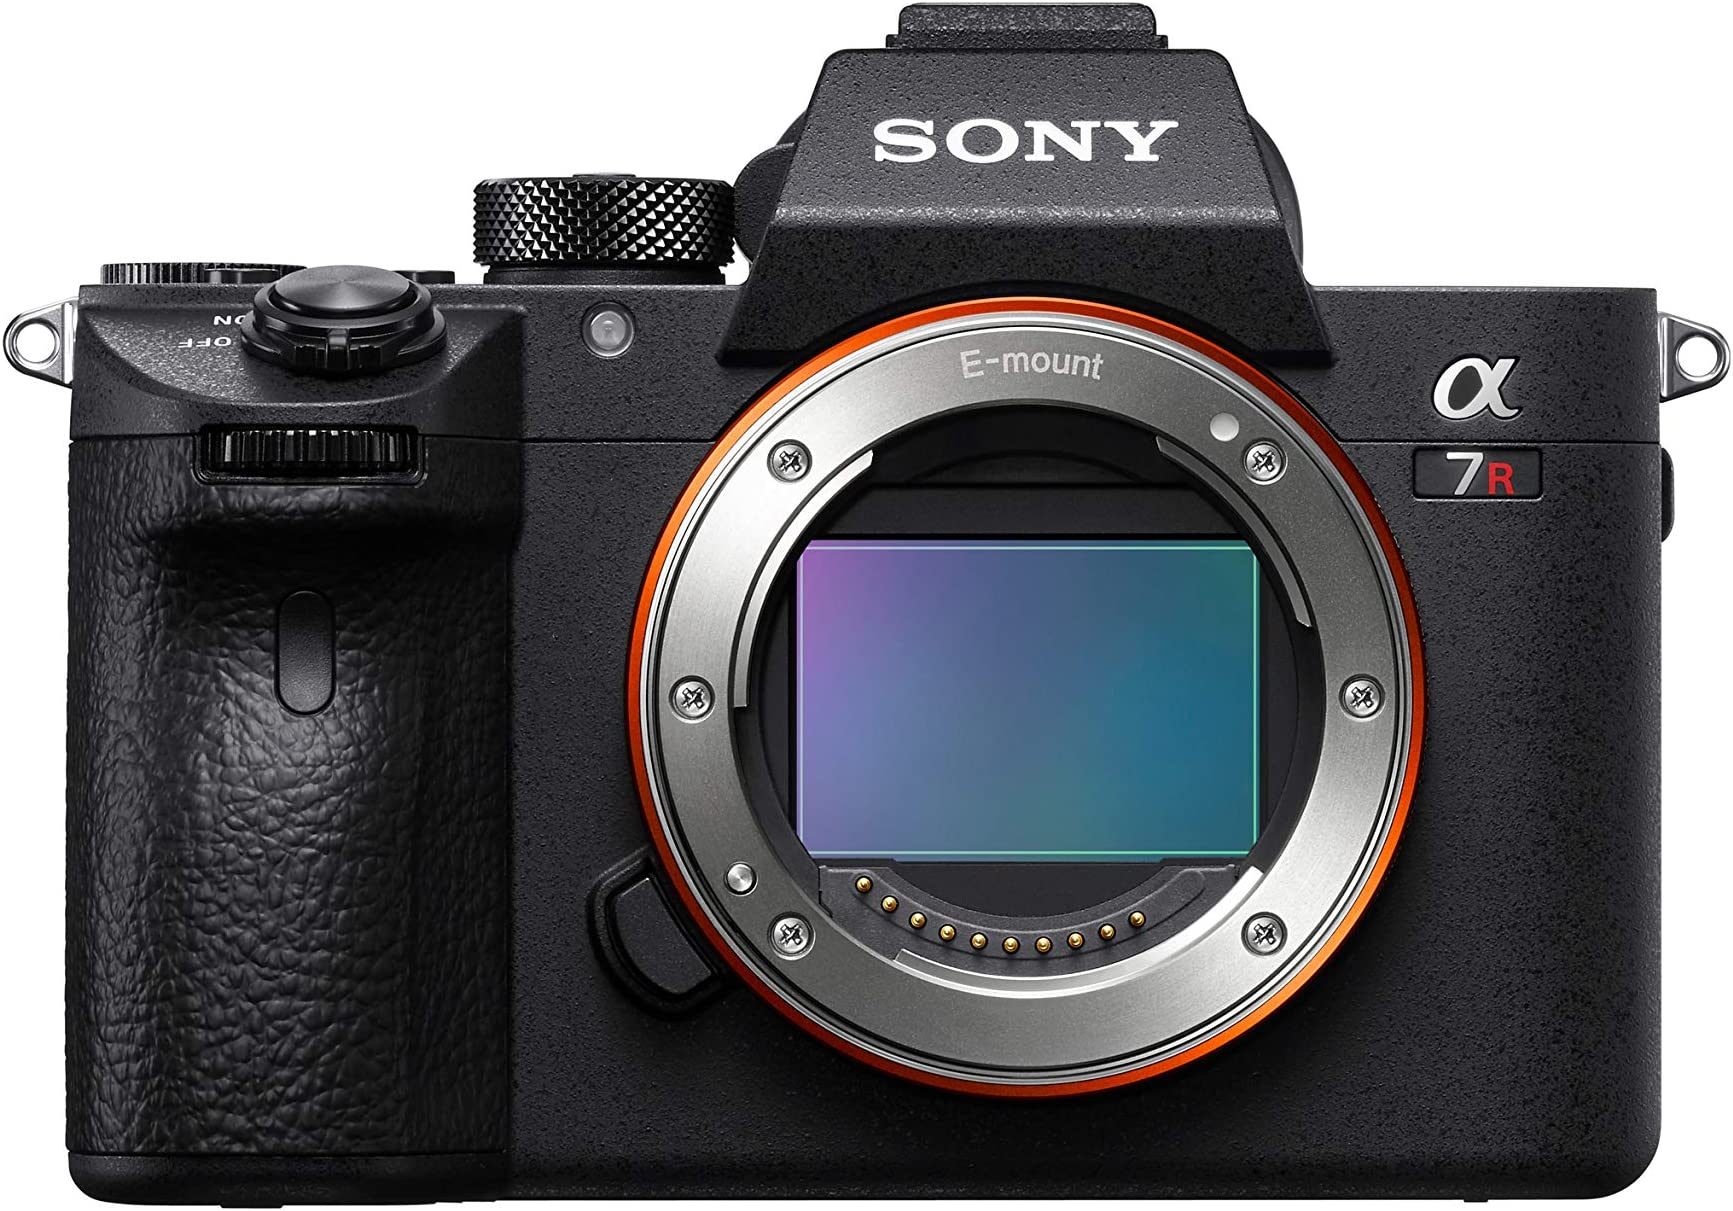 "Sony a7R III Mirrorless Camera: 42.4MP Full Frame High Resolution Interchangeable Lens Digital Camera with Front End LSI Image Processor, 4K HDR Video and 3"" LCD Screen - ILCE7RM3/B Body, Black"